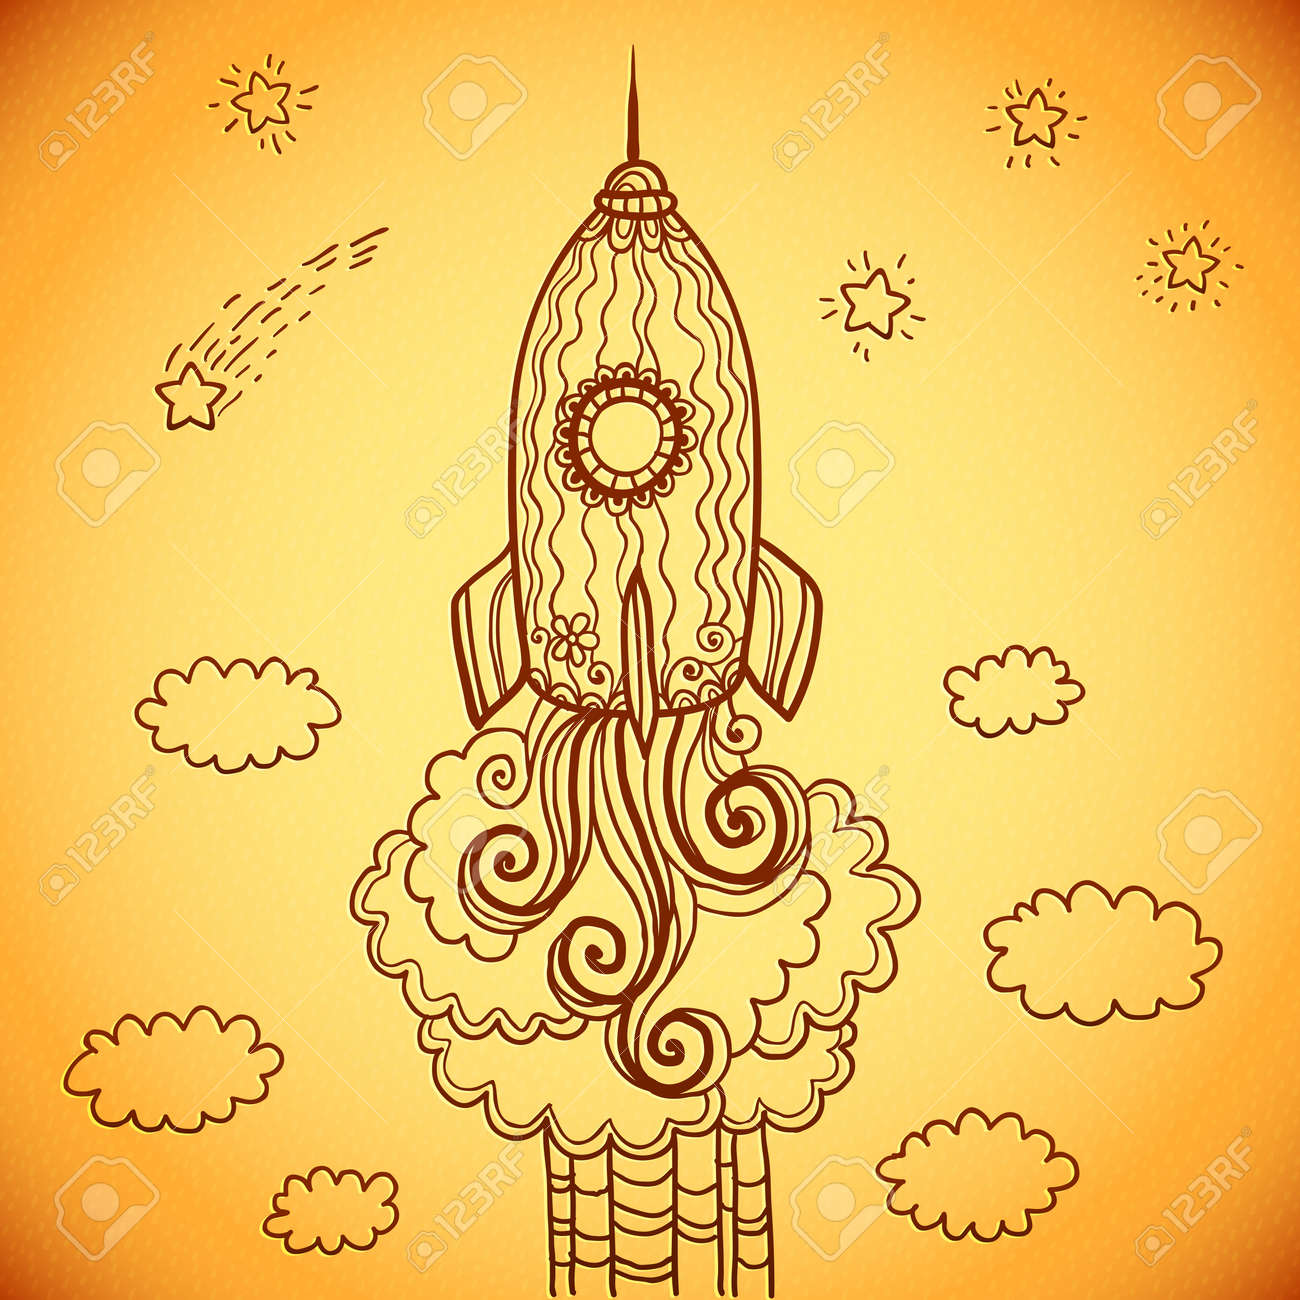 Vector ornate doodles rocket starting to space Stock Photo - 19355915